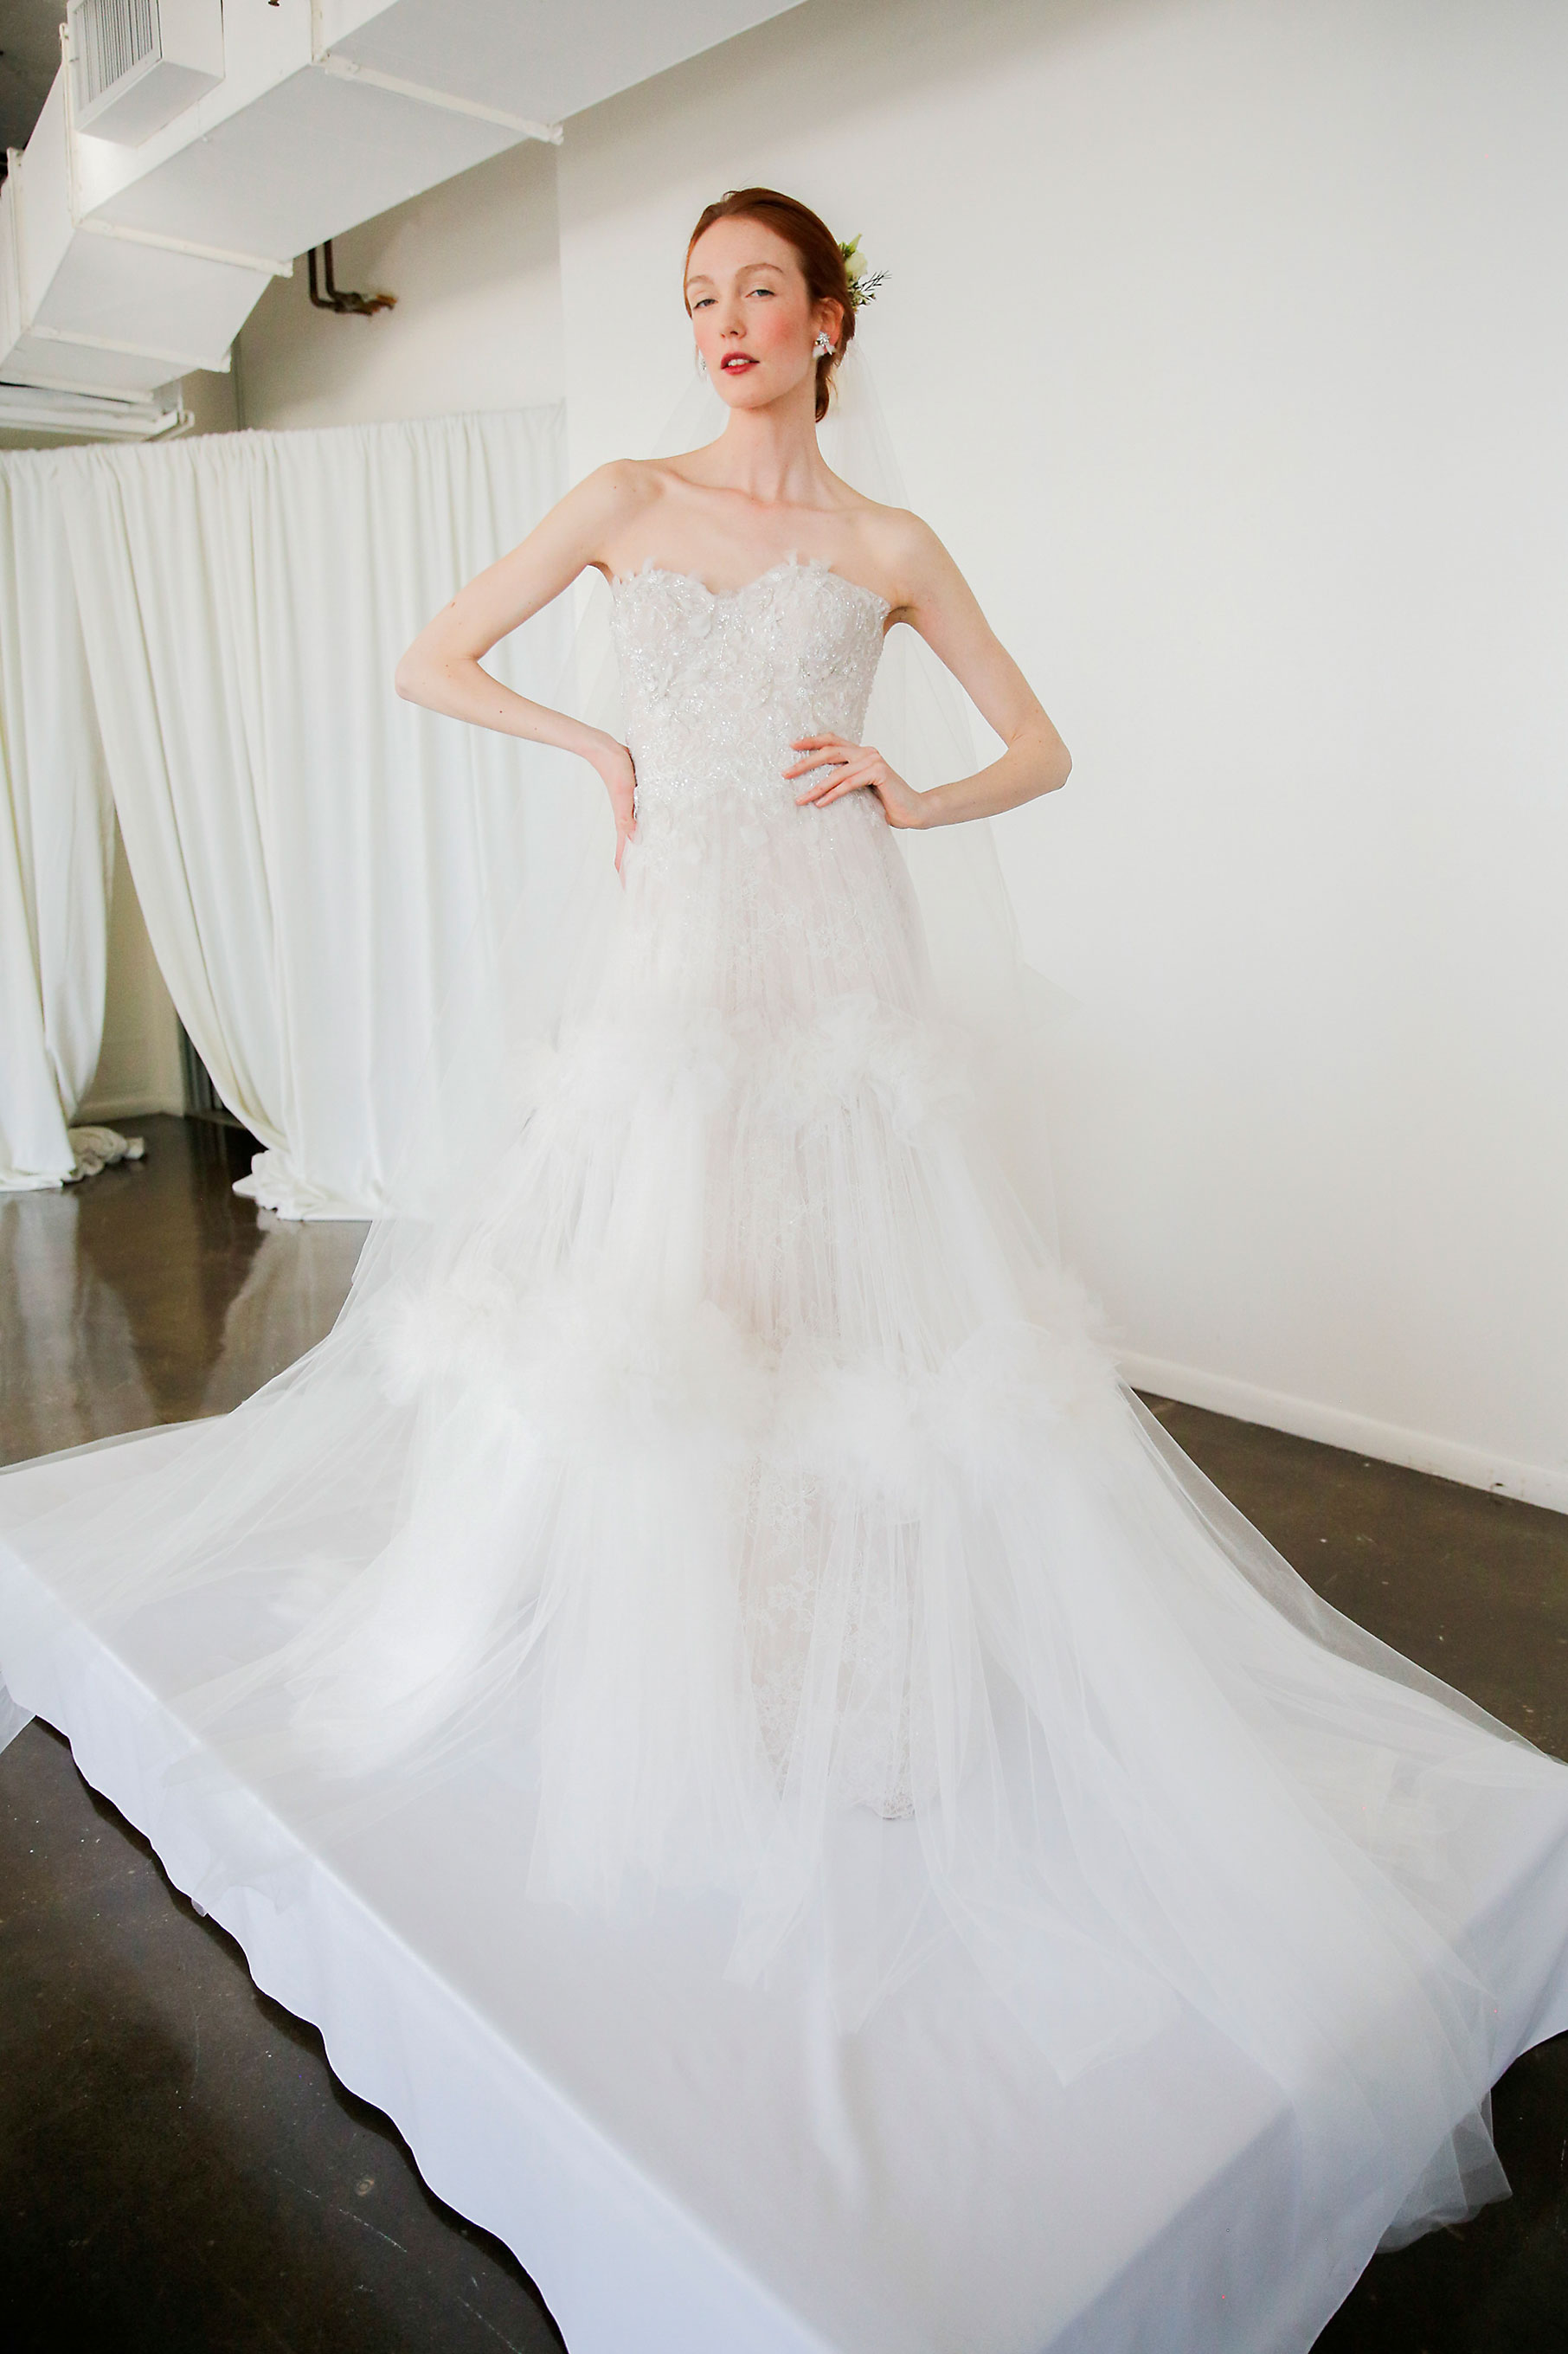 marchesa bridal spring fashion show marchesa wedding dresses Marchesa brd S17 Marchesa brd S17